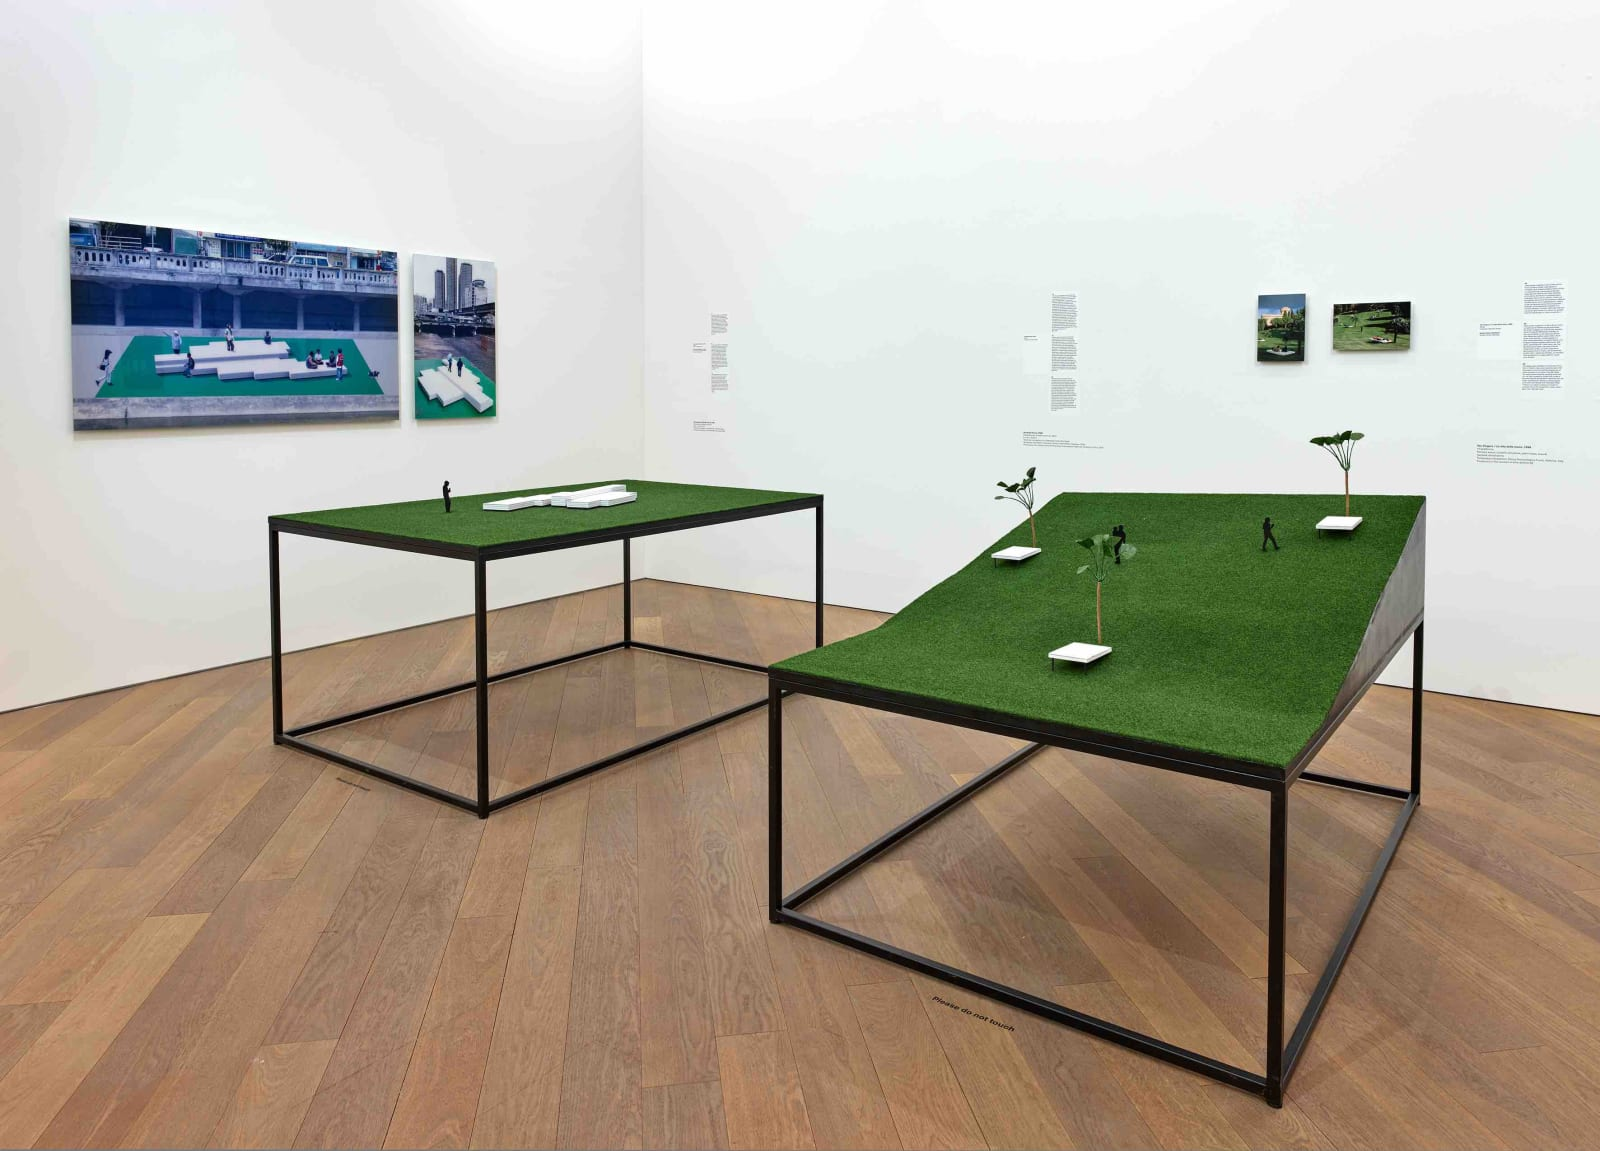 Theis_Building Philosophy, Cultivating Utopia, exhibition view, 2019, MUDAM Luxembourg